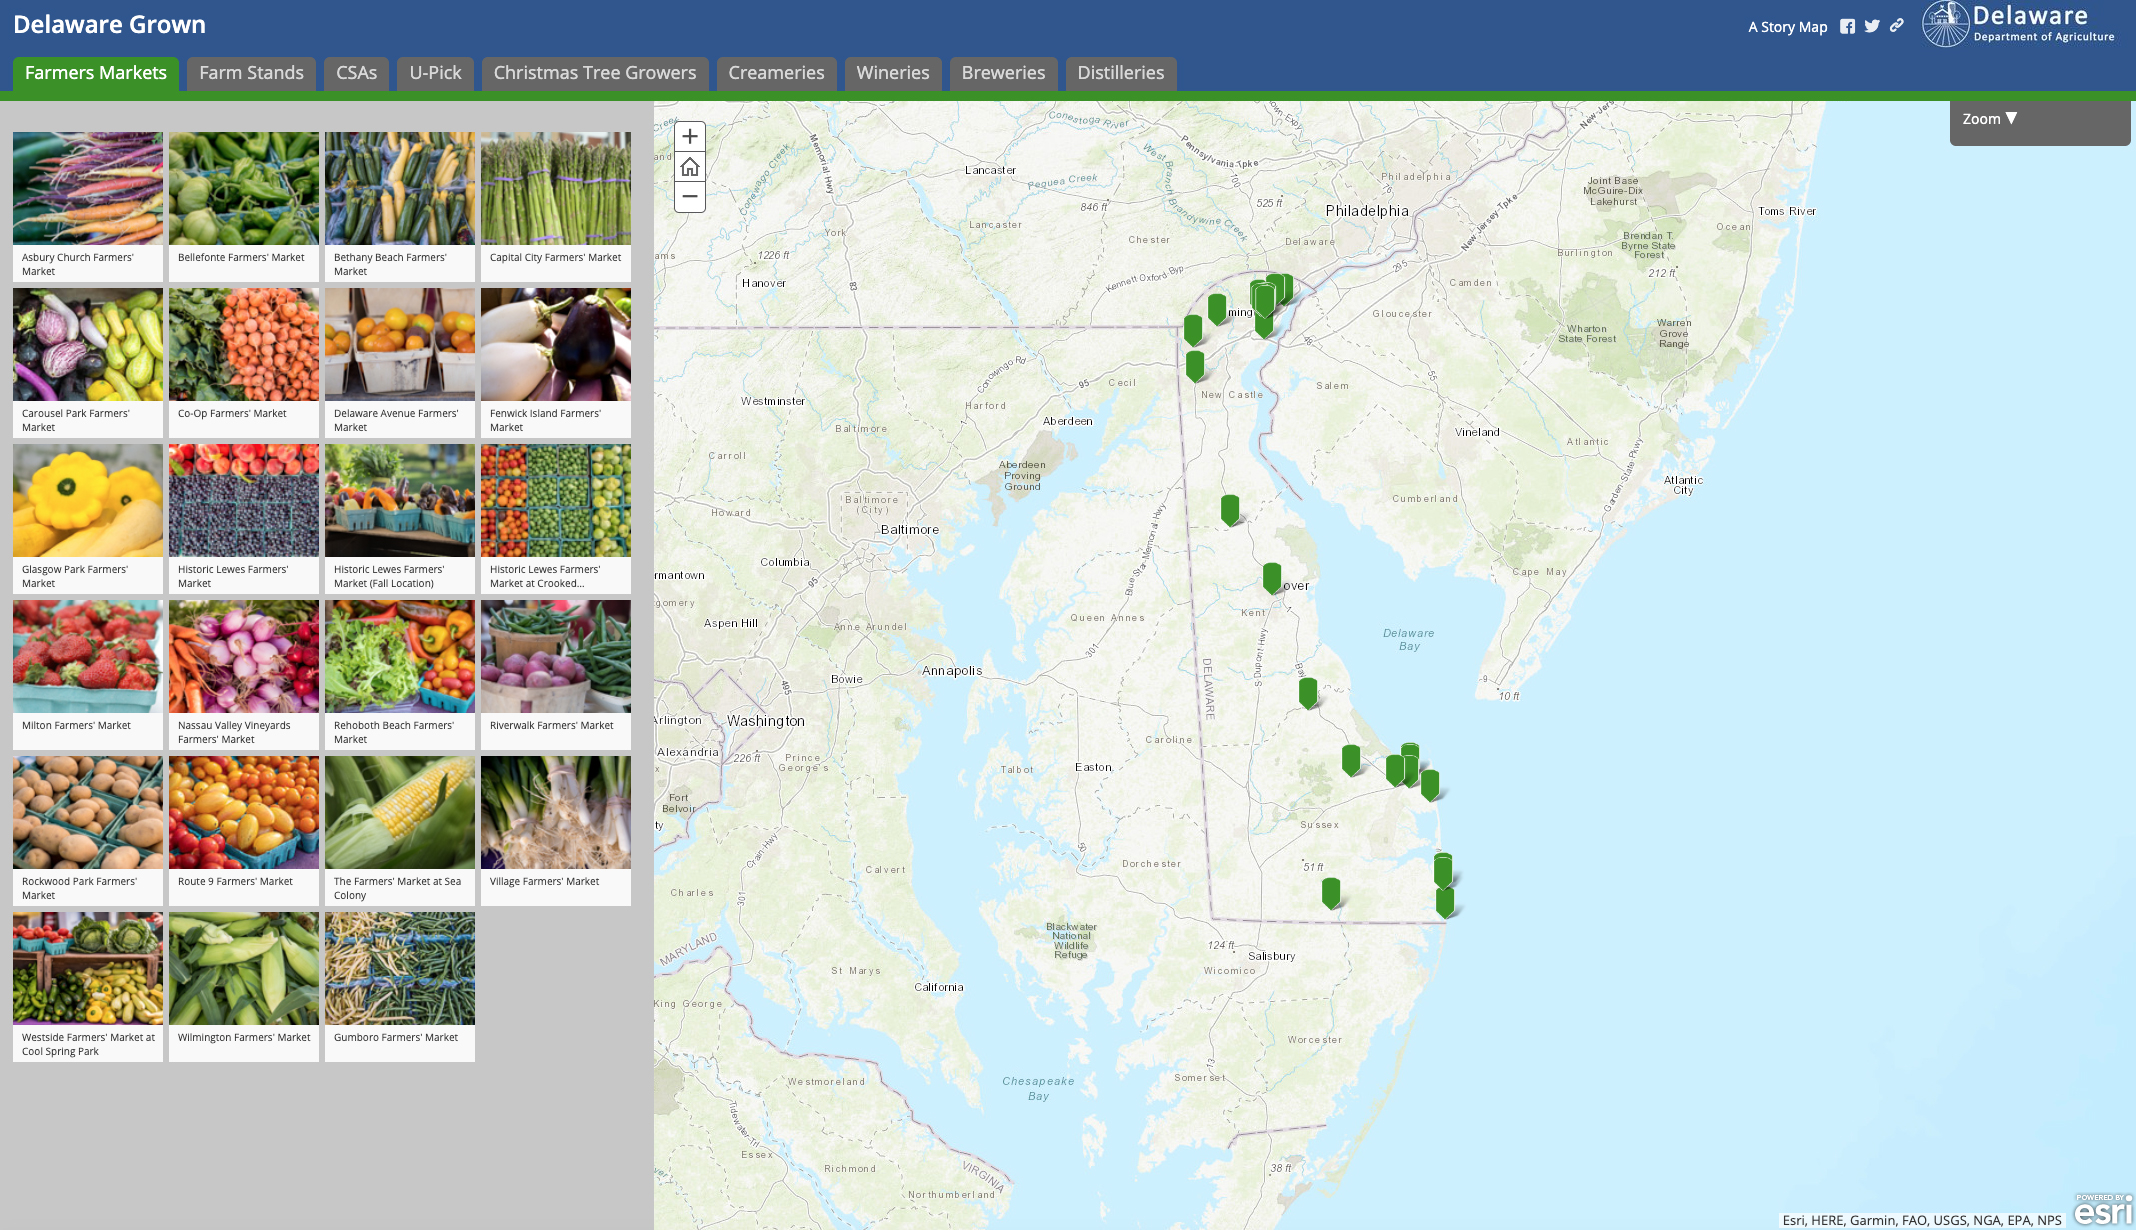 Image of the Delaware Grown Farm Fresh map application